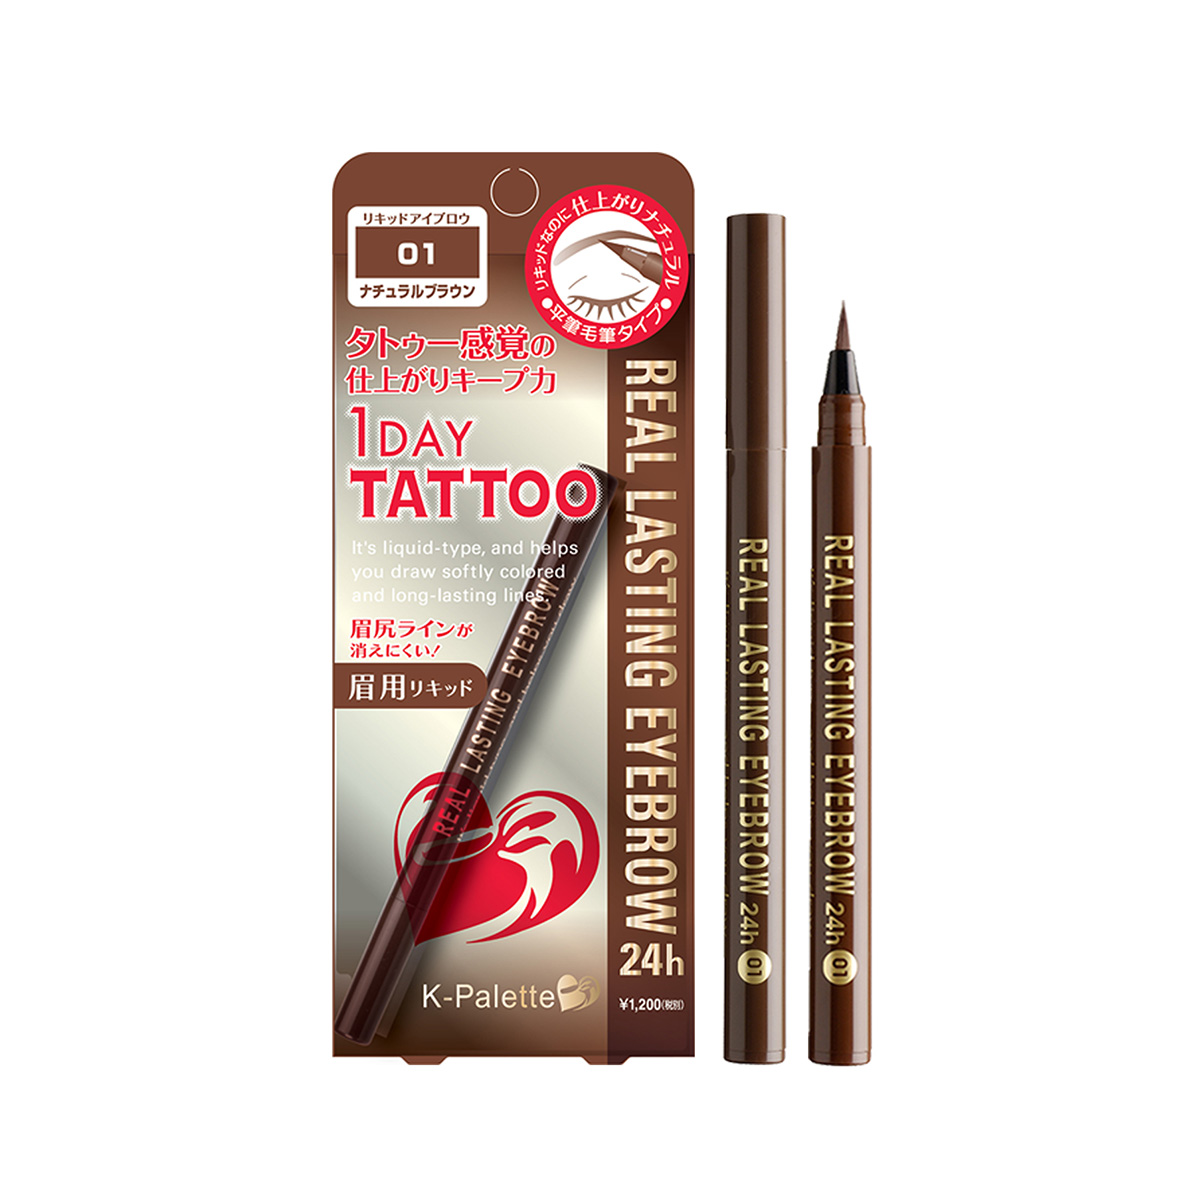 24h Real Lasting Eyebrow Liner - Natural Brown